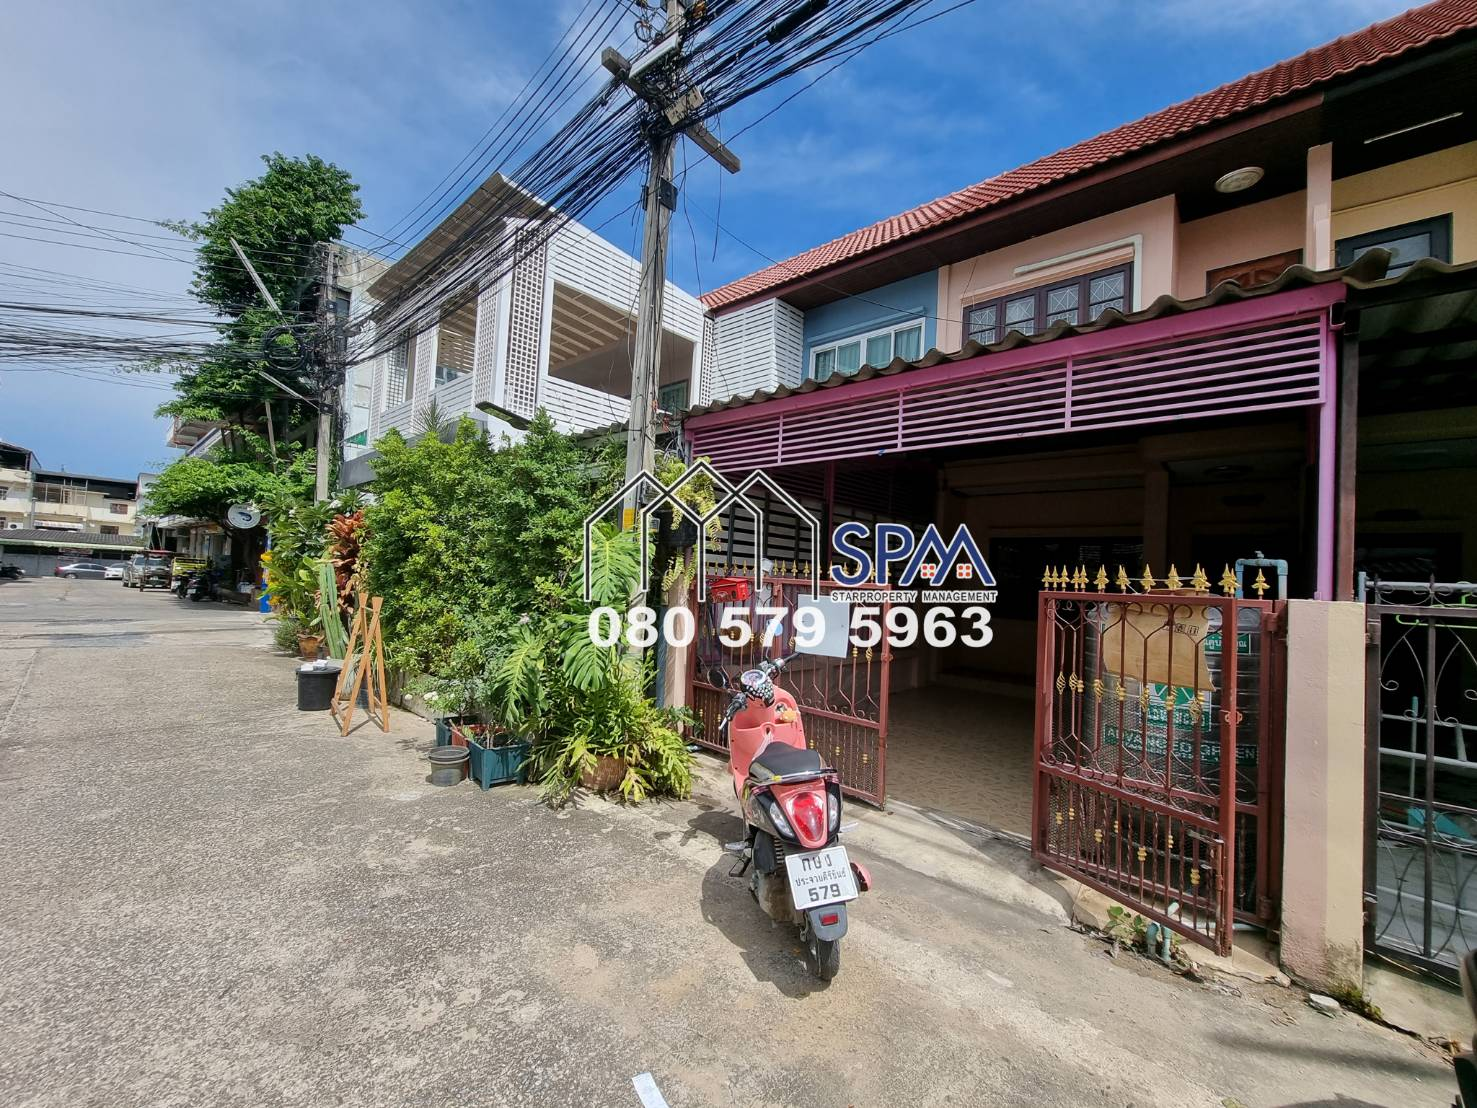 Town House at Center of Hua Hin for Sale